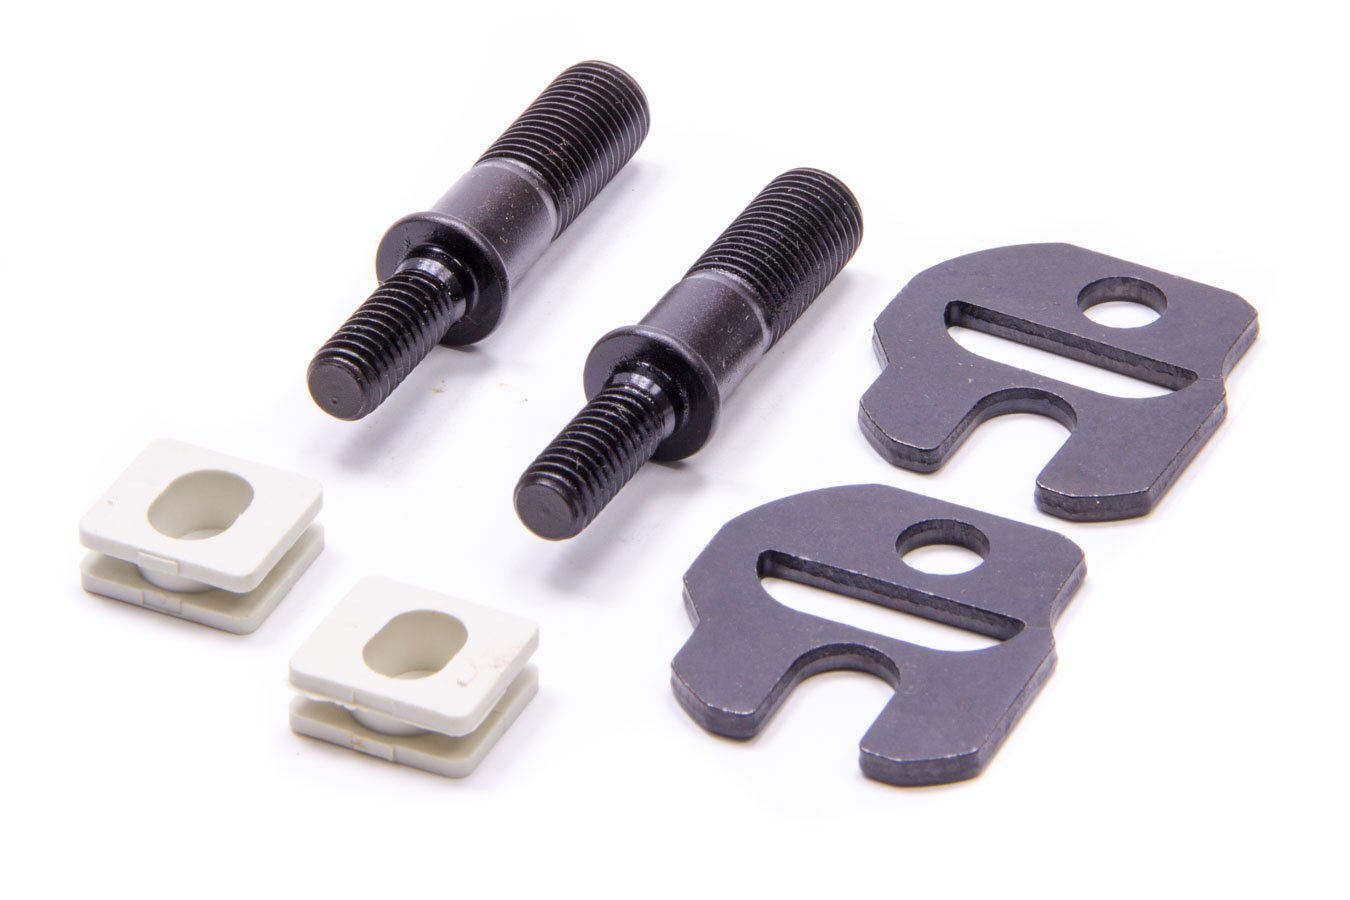 Crane Cams 52655-2 Rocker Arm Guide Plate Conversion Kit